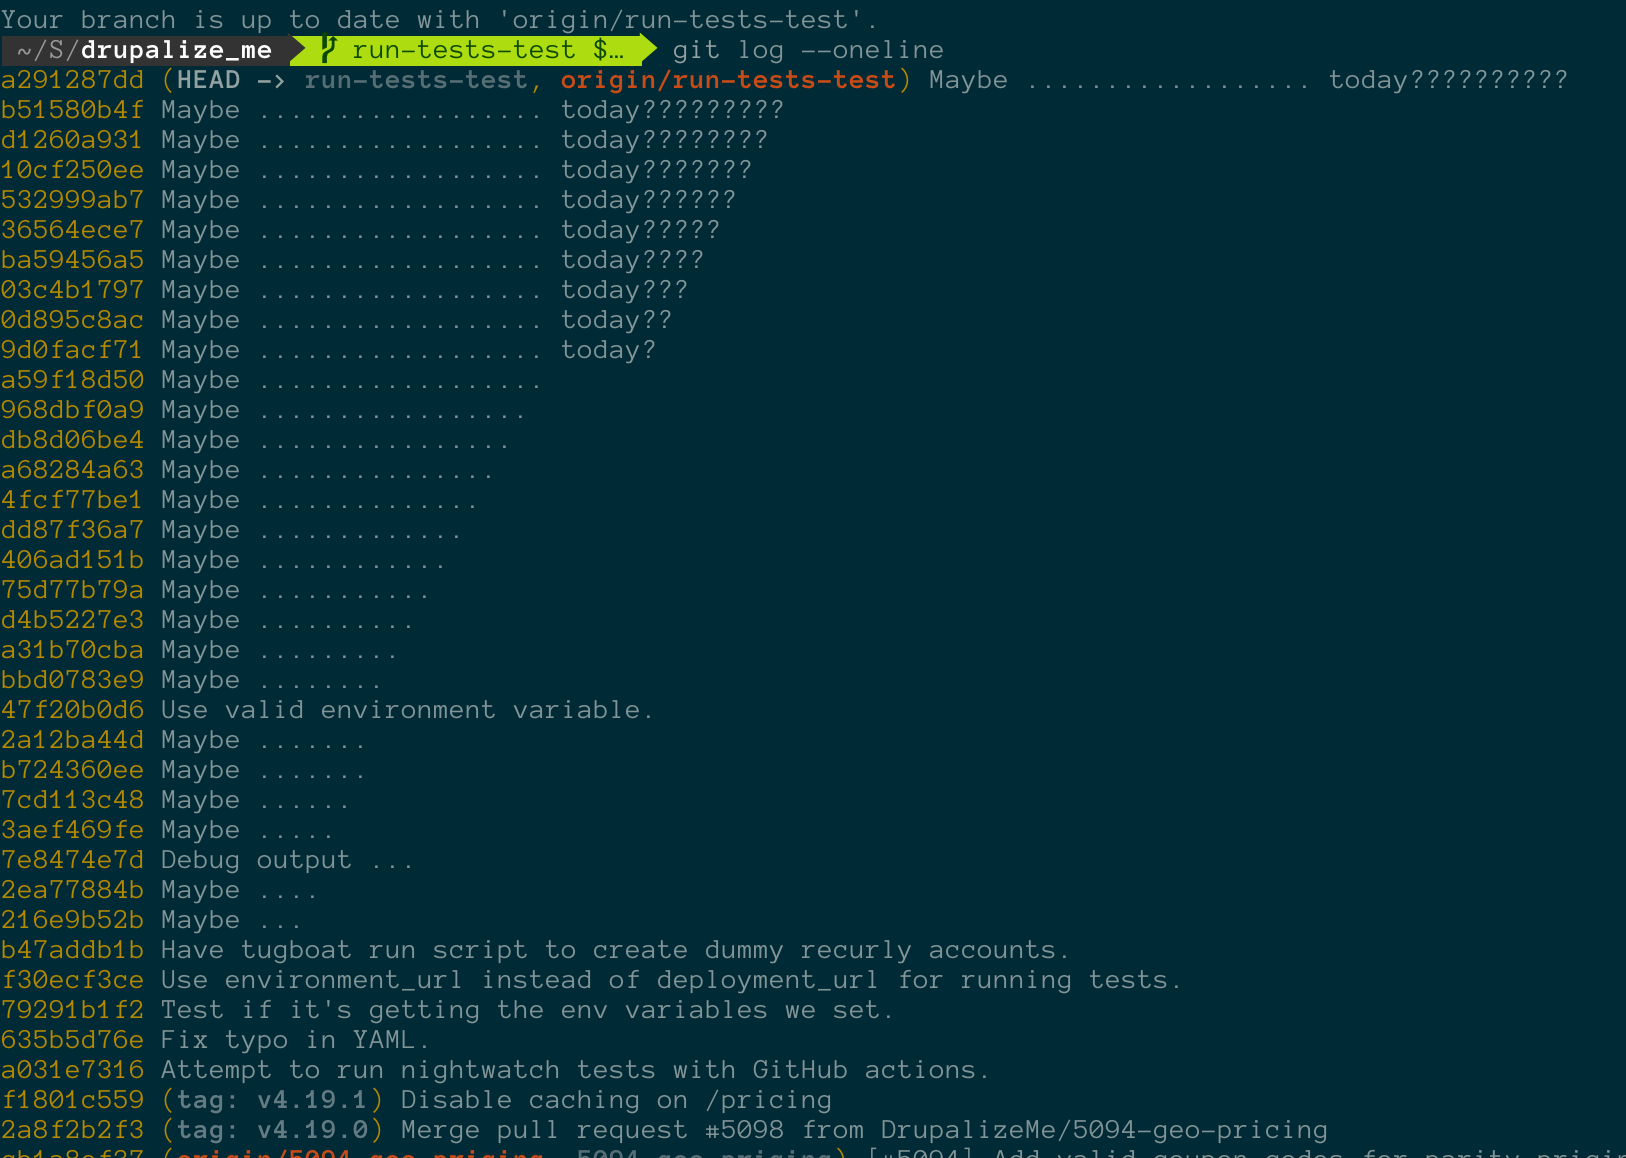 Terminal showing git log --oneline output and a whole list of commit messages that say 'Testing ....'